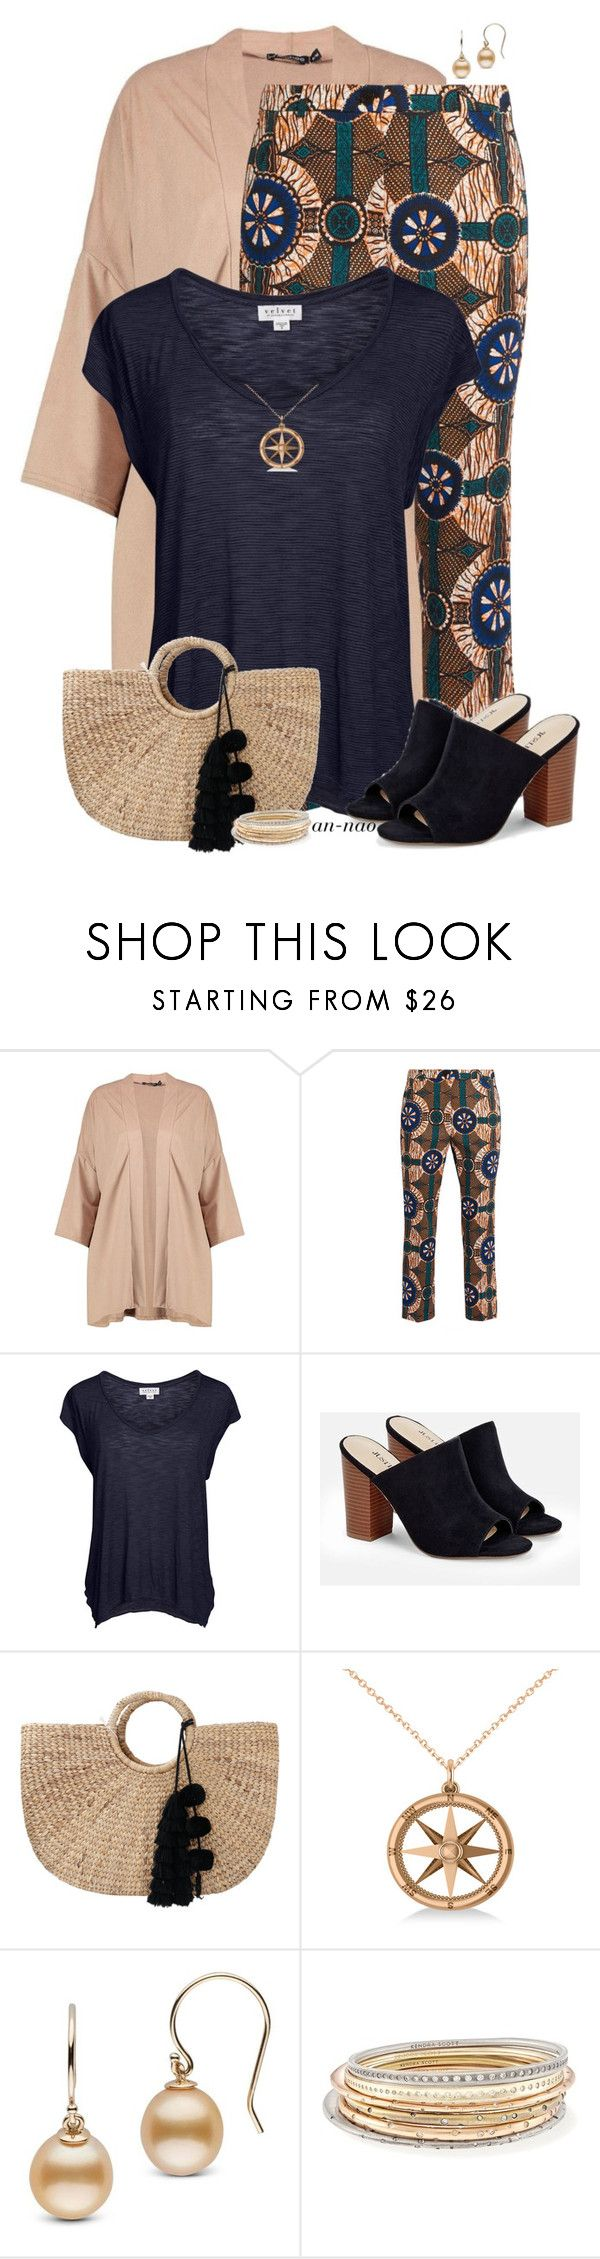 """Printed cropped pants."" by an-nao ❤ liked on Polyvore featuring Boohoo, Weekend Max Mara, Velvet by Graham & Spencer, JustFab, JADEtribe, Allurez and Kendra Scott"